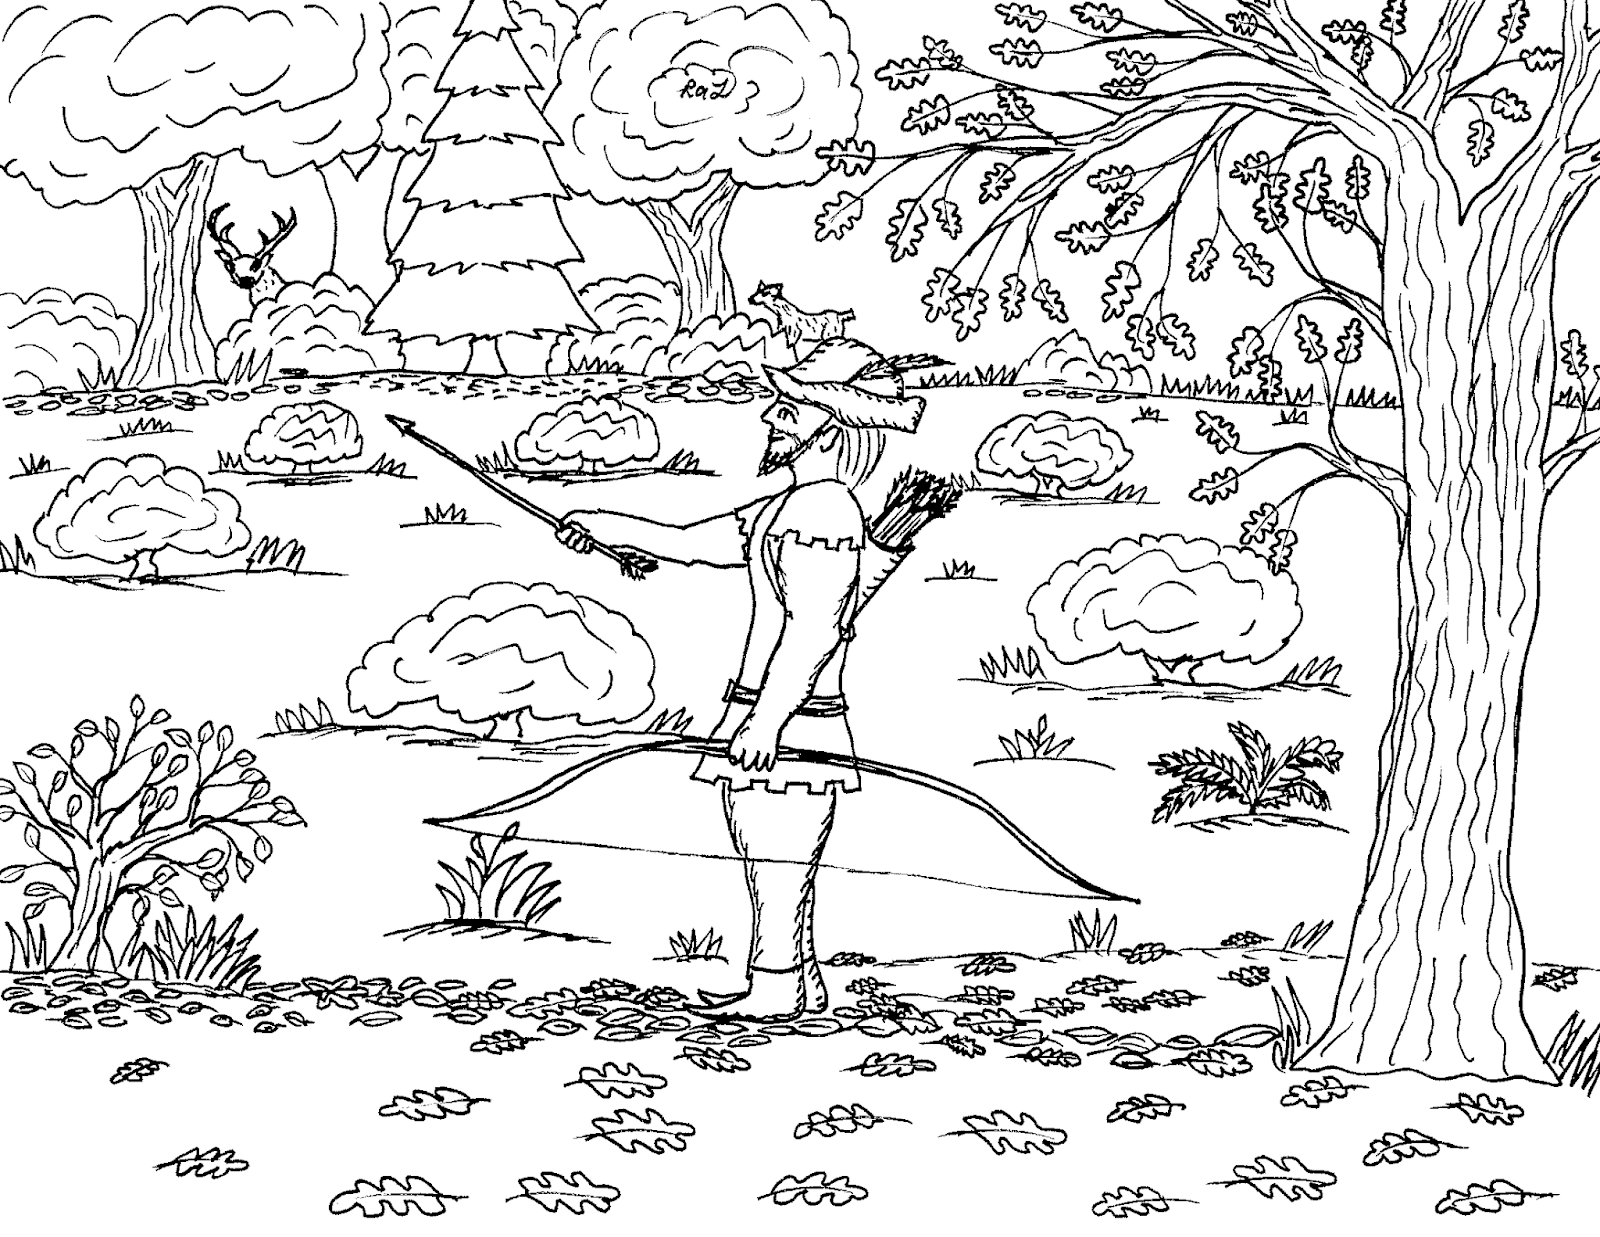 Robin S Great Coloring Pages Robin Hood Out Hunting